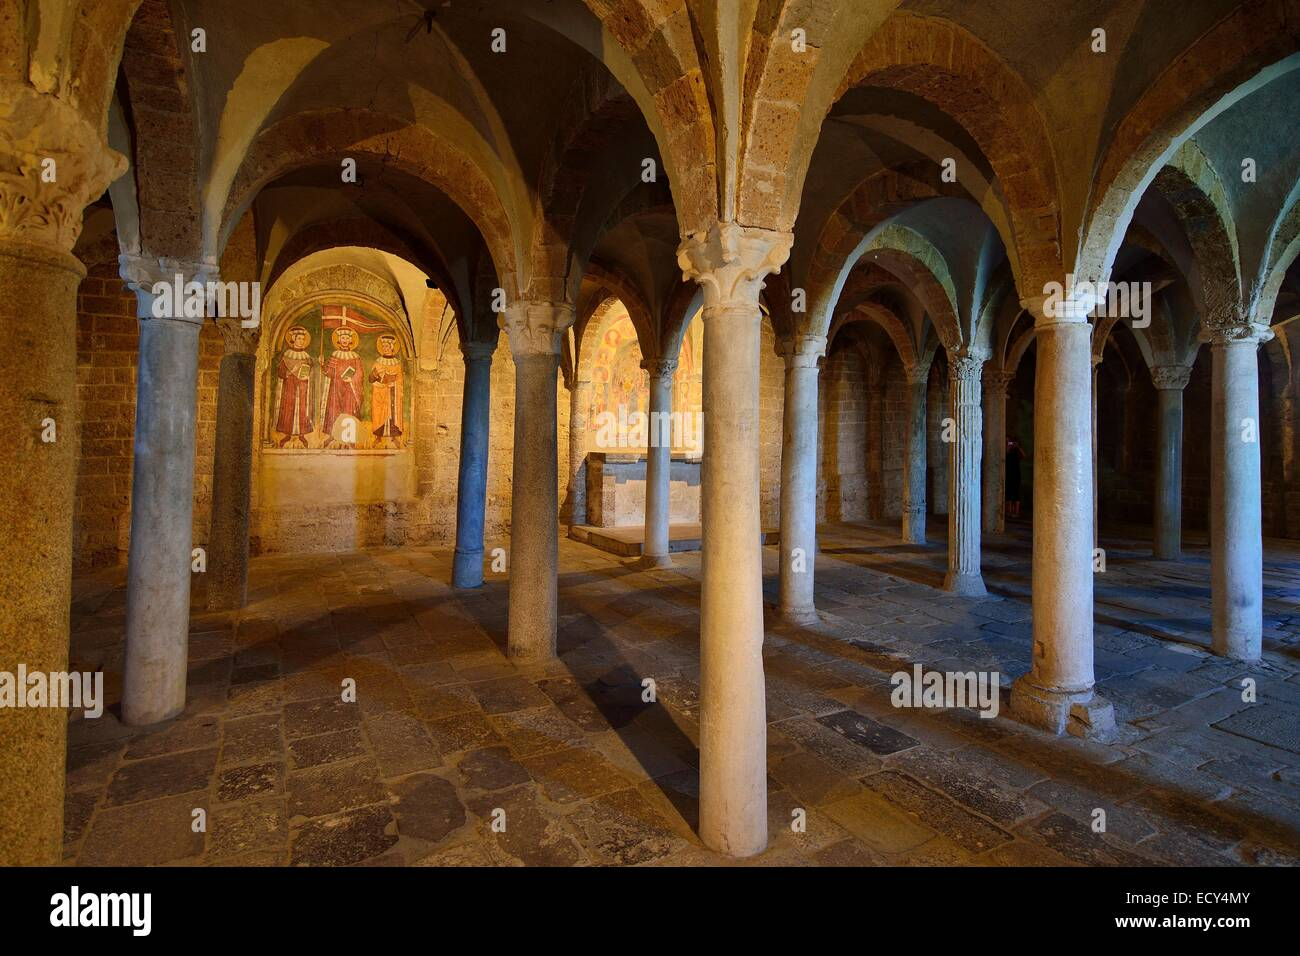 Hall crypt with ancient reused columns in the Basilica of San Pietro, Tuscania, Viterbo, Lazio, Italy - Stock Image